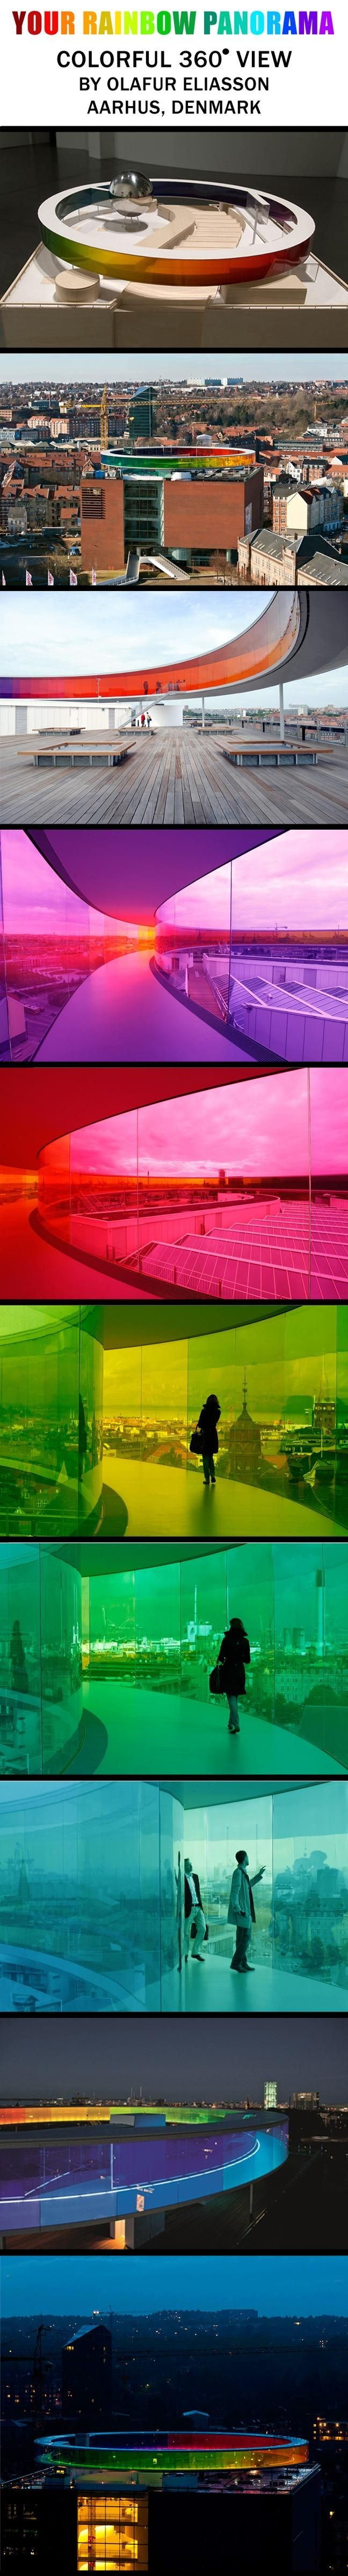 Brought to you by http://www.etsy.com/people/UncommonRecycables rainbow panorama, olafur eliasson, denmark.